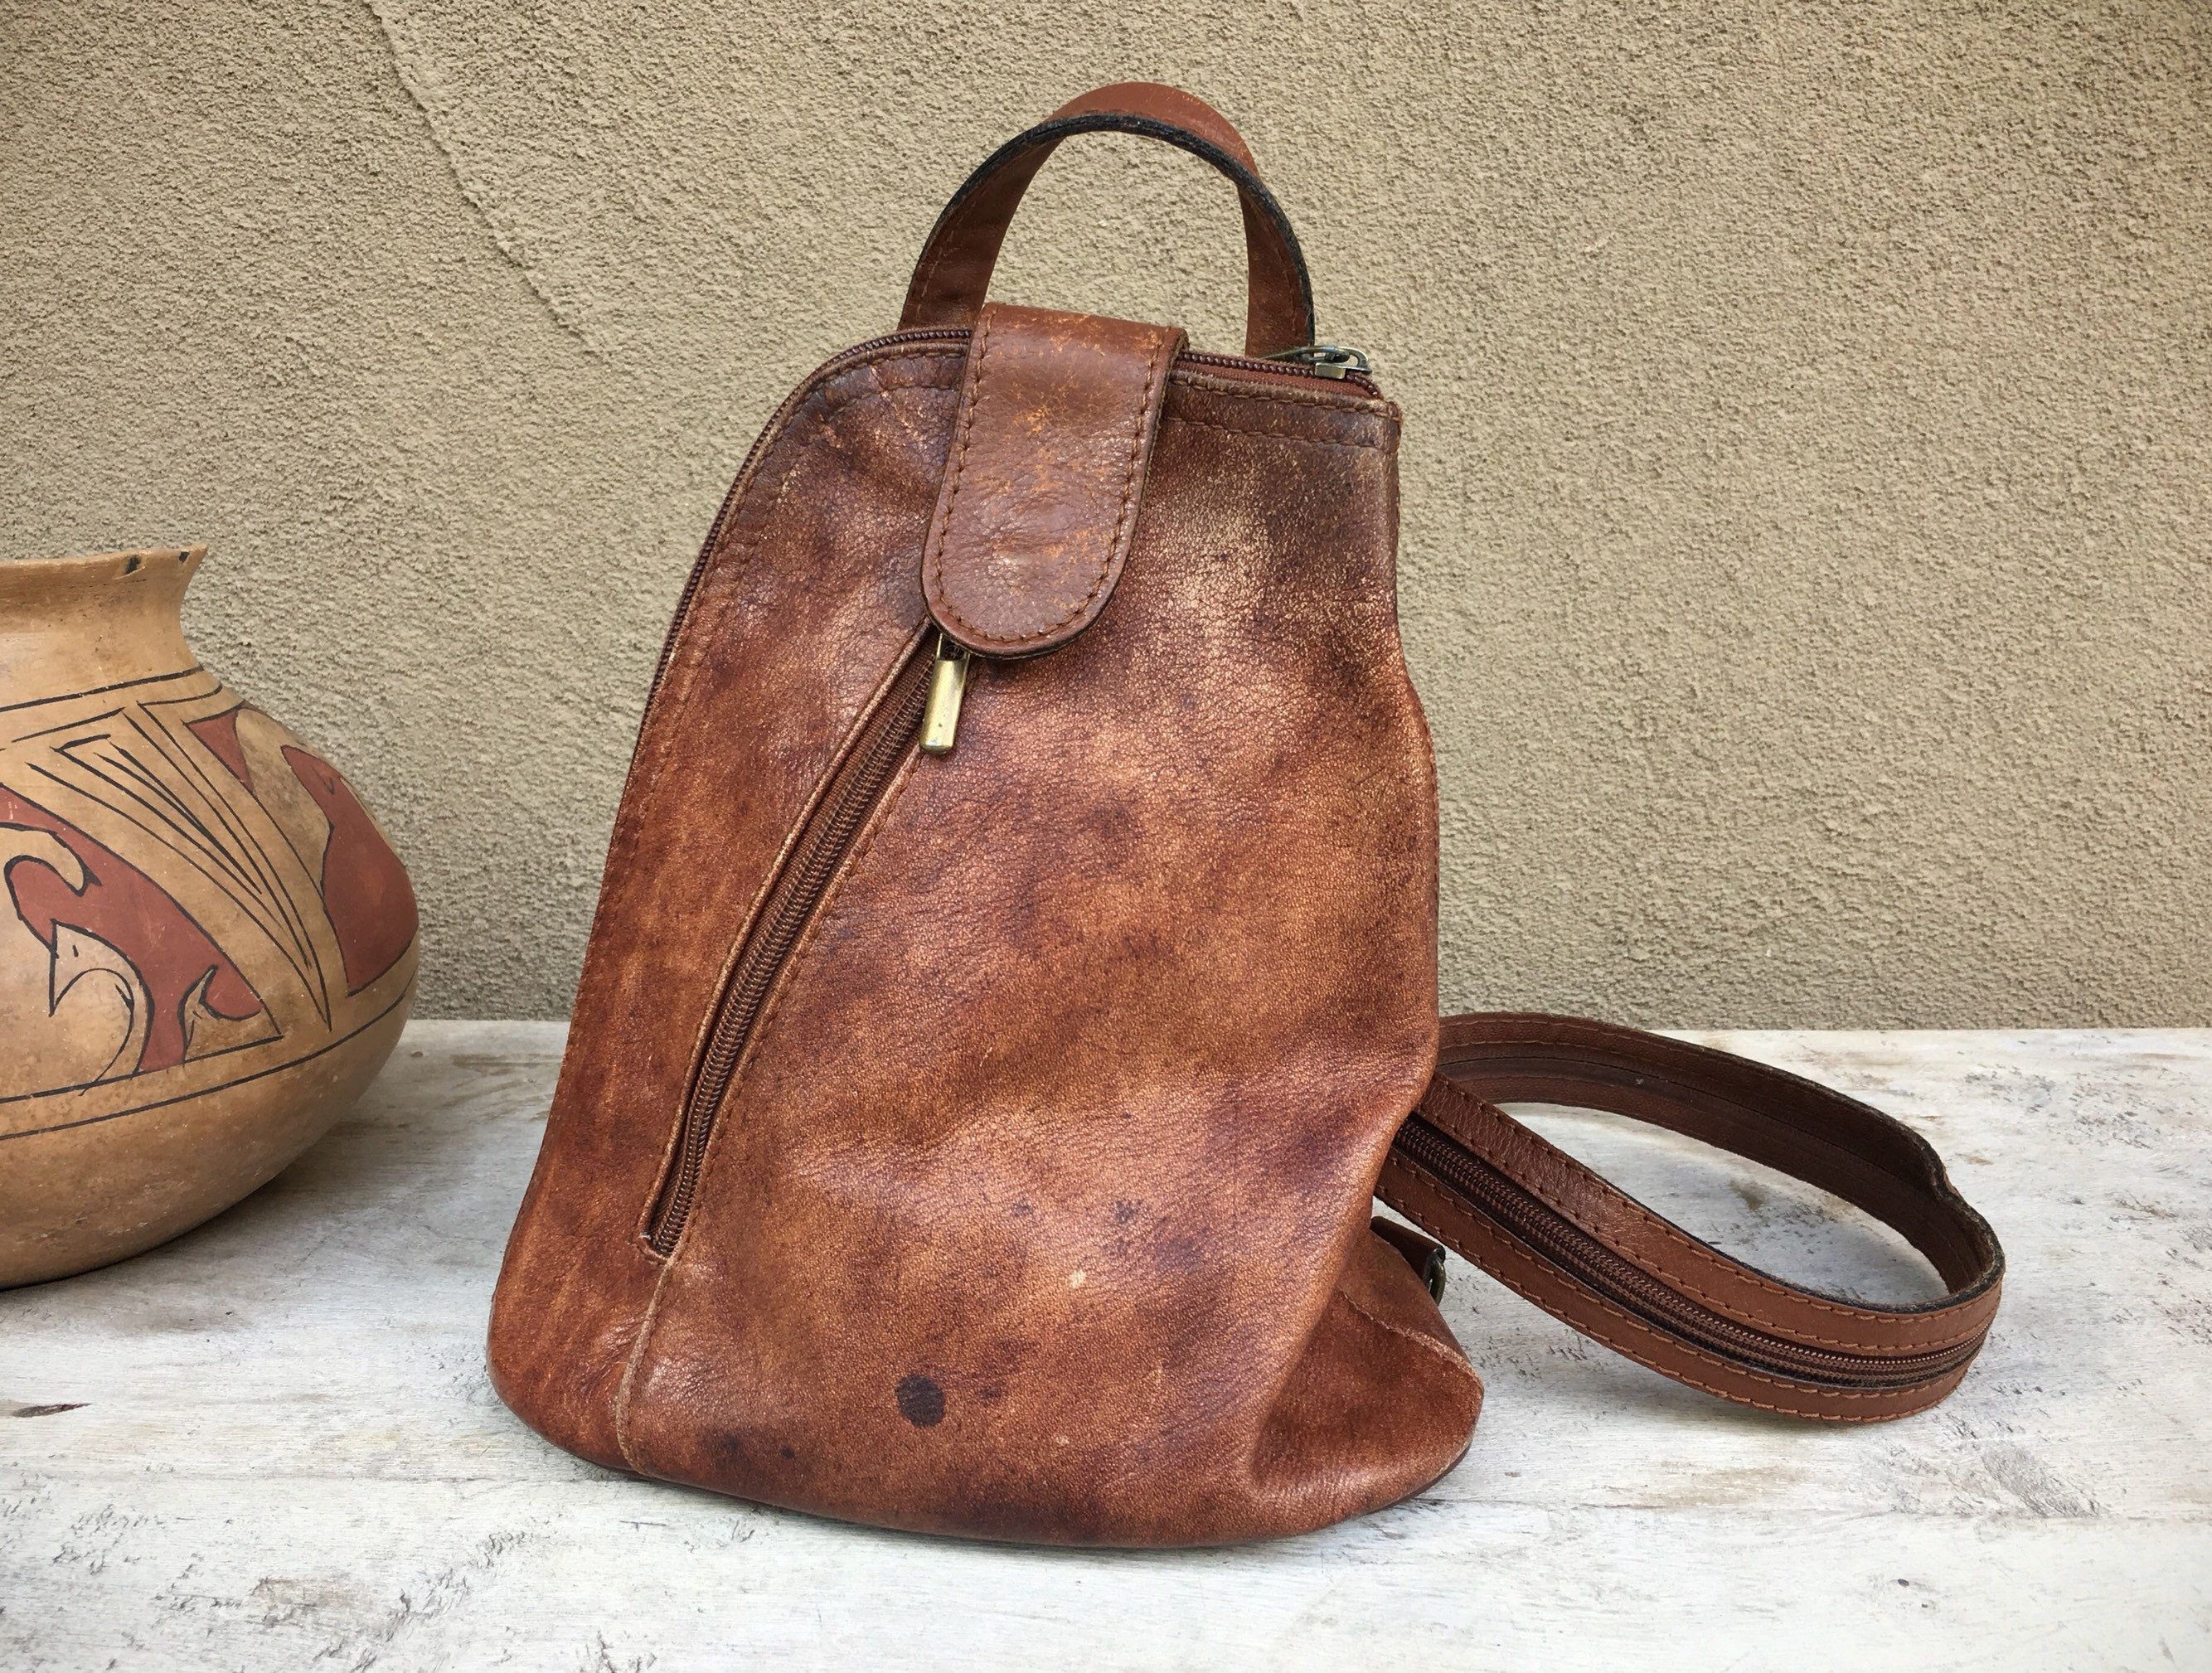 79762f22d1c5 Vintage Small Sling Bag Chestnut Brown Italian Leather Single Strap Backpack  Purse for Women or Men